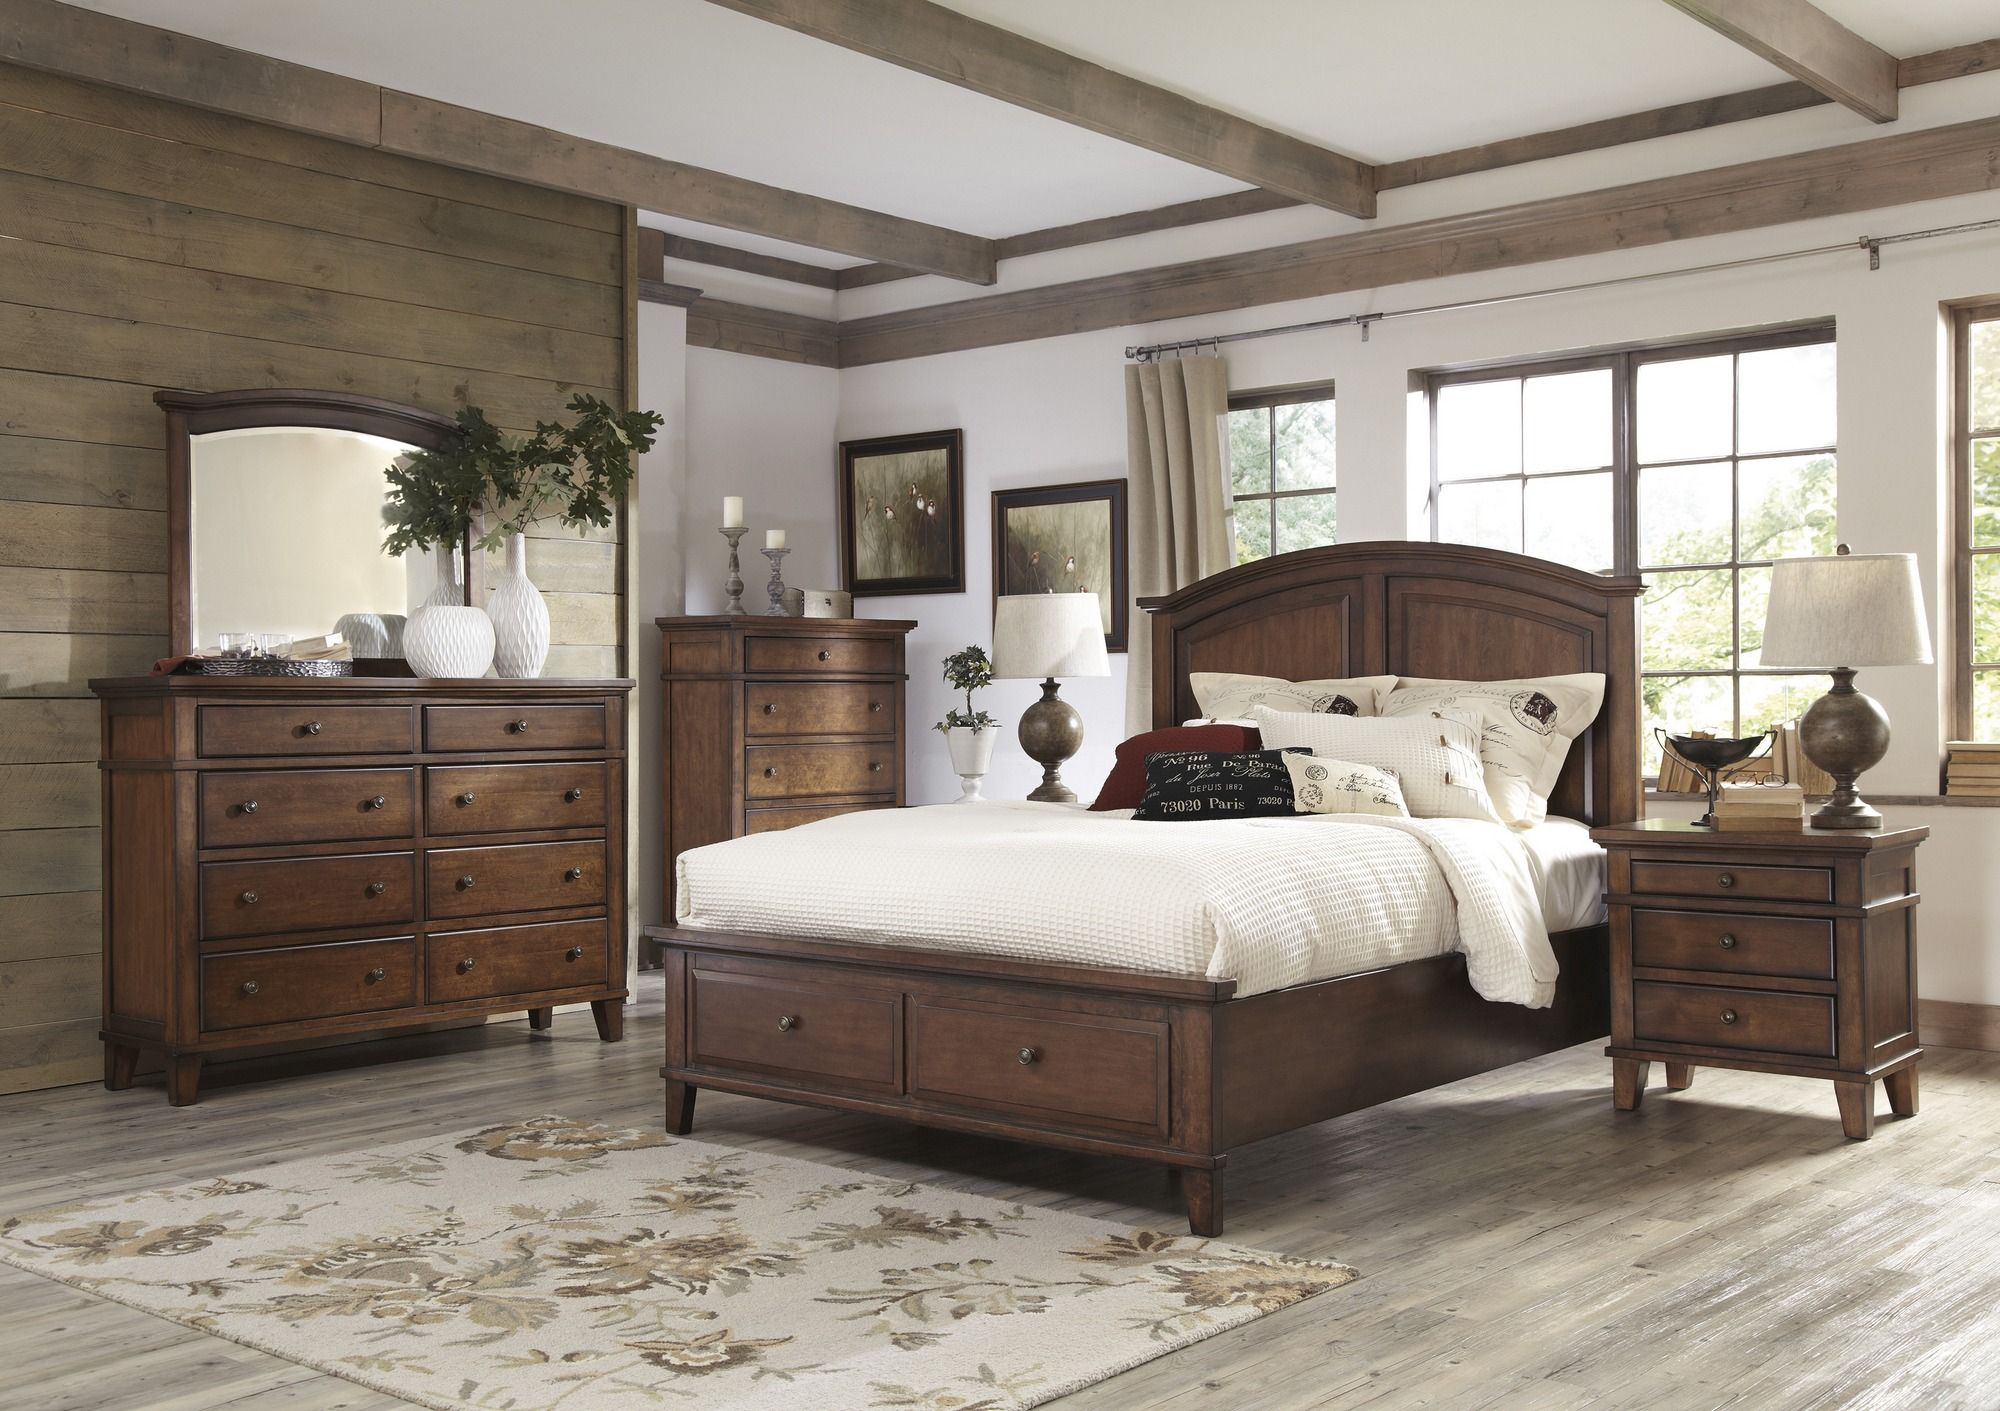 B565 31 | Signature By Ashley Burkesville Dresser Burnished Brown | Big  Sandy Superstores |